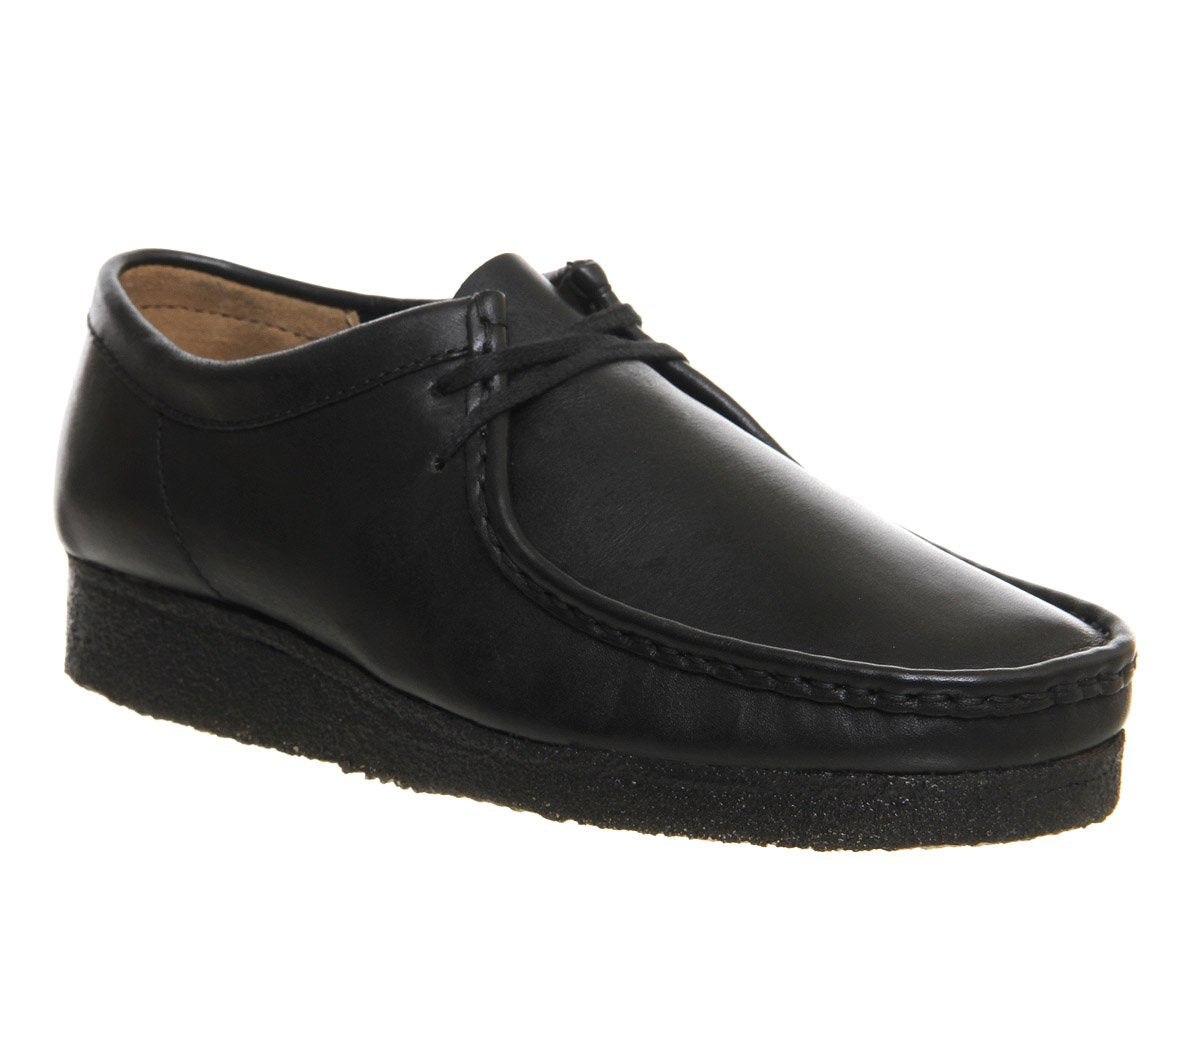 Womens Clarks Wallabee Black Leather